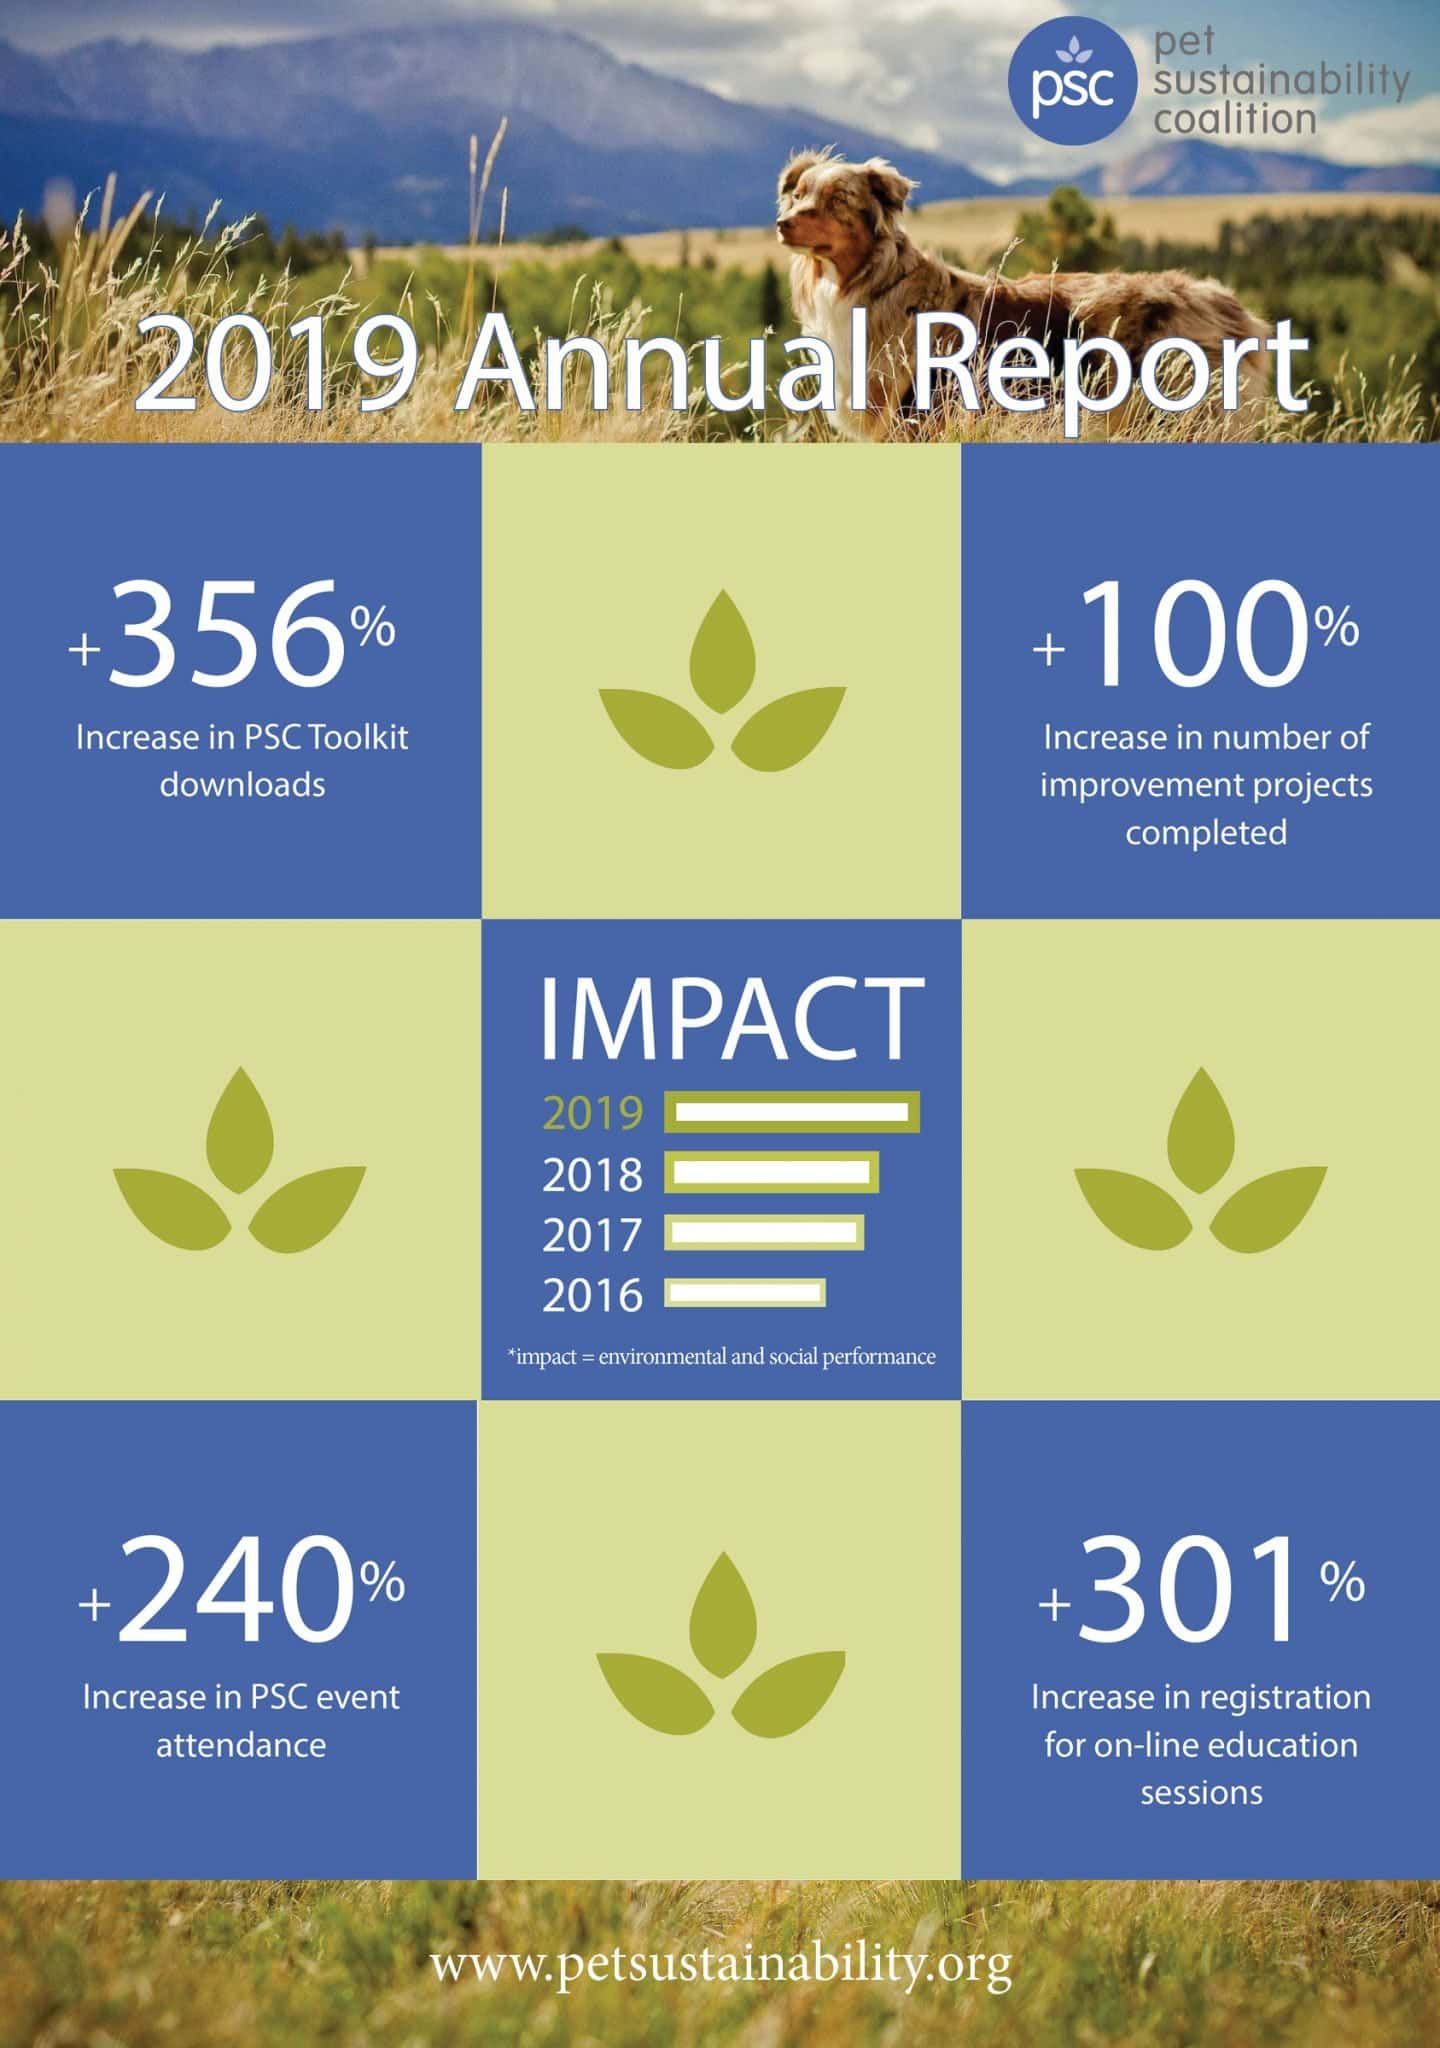 PSC Releases 2019 Progress Report